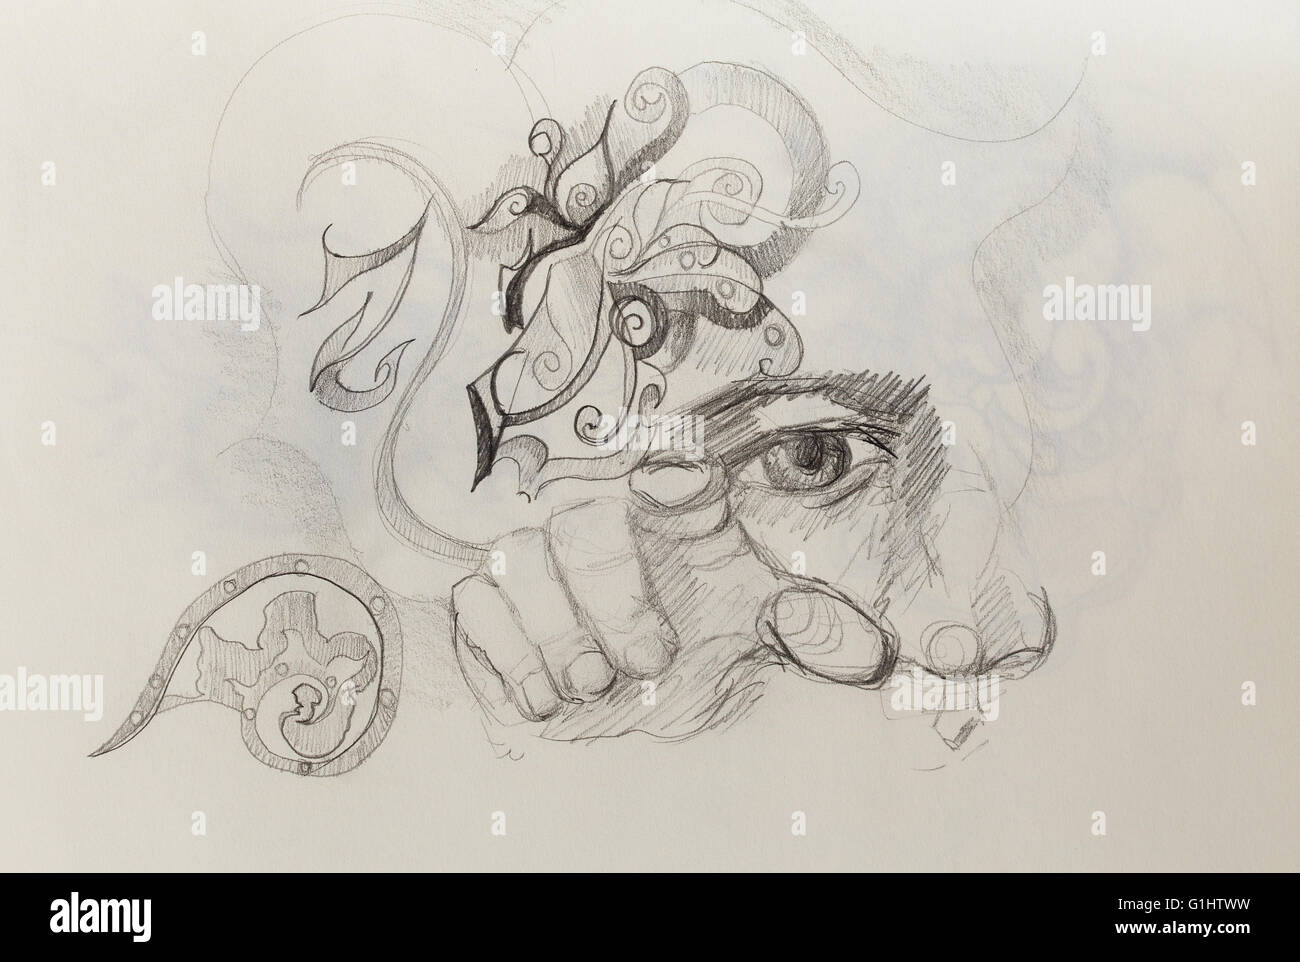 Man eye nose and hand collage pencil sketch on paper